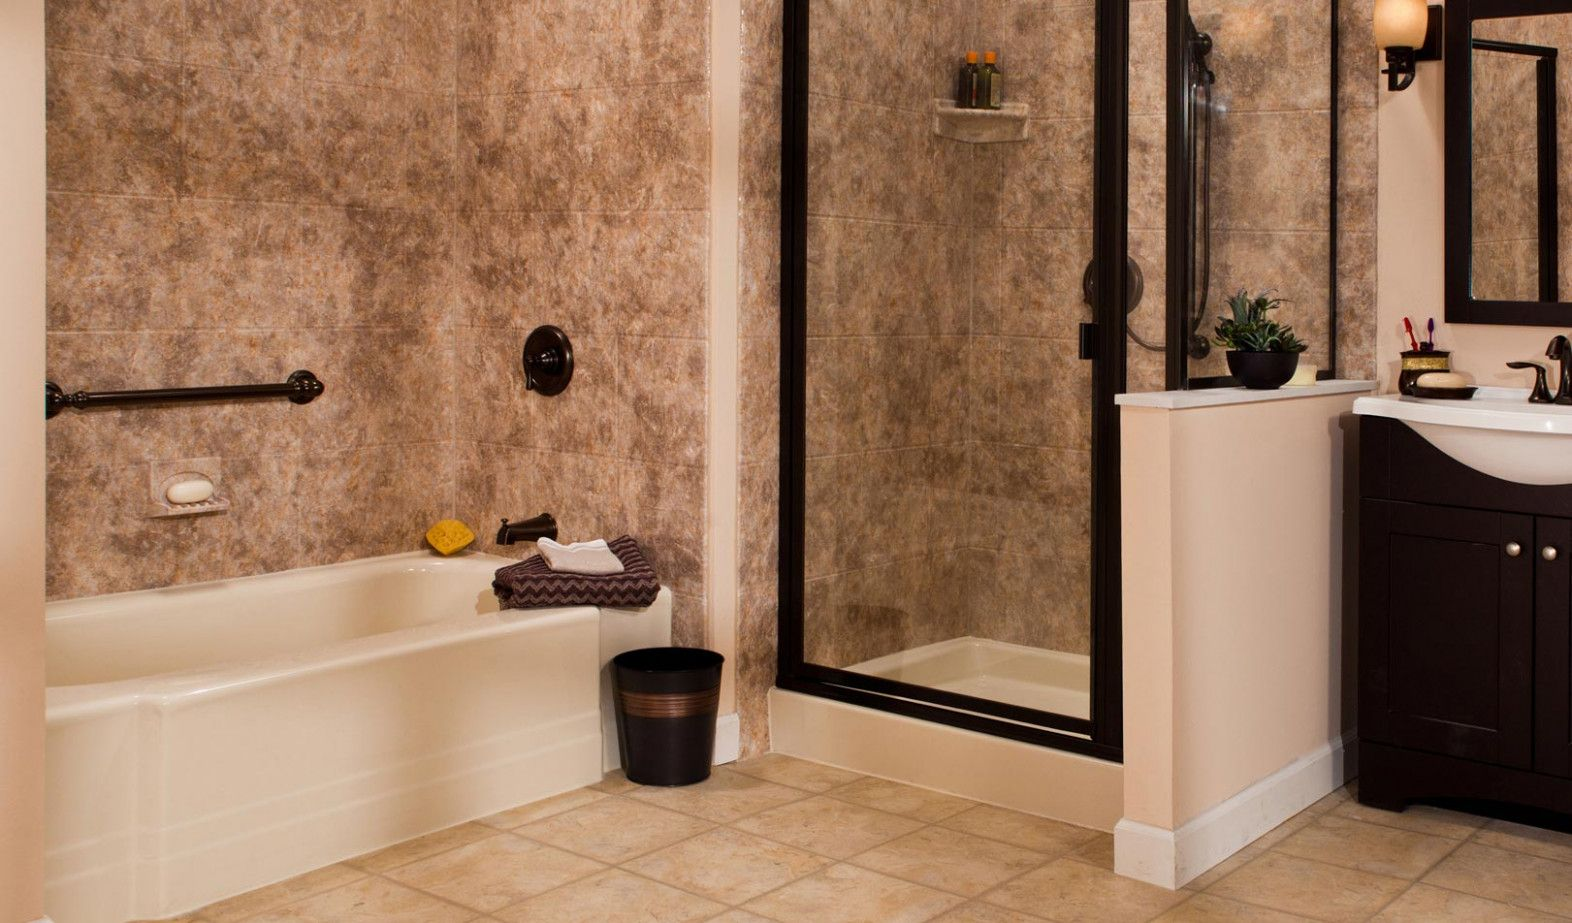 18 Reliable Sources To Learn About Bathtub Wall Decor Tub Surround ...